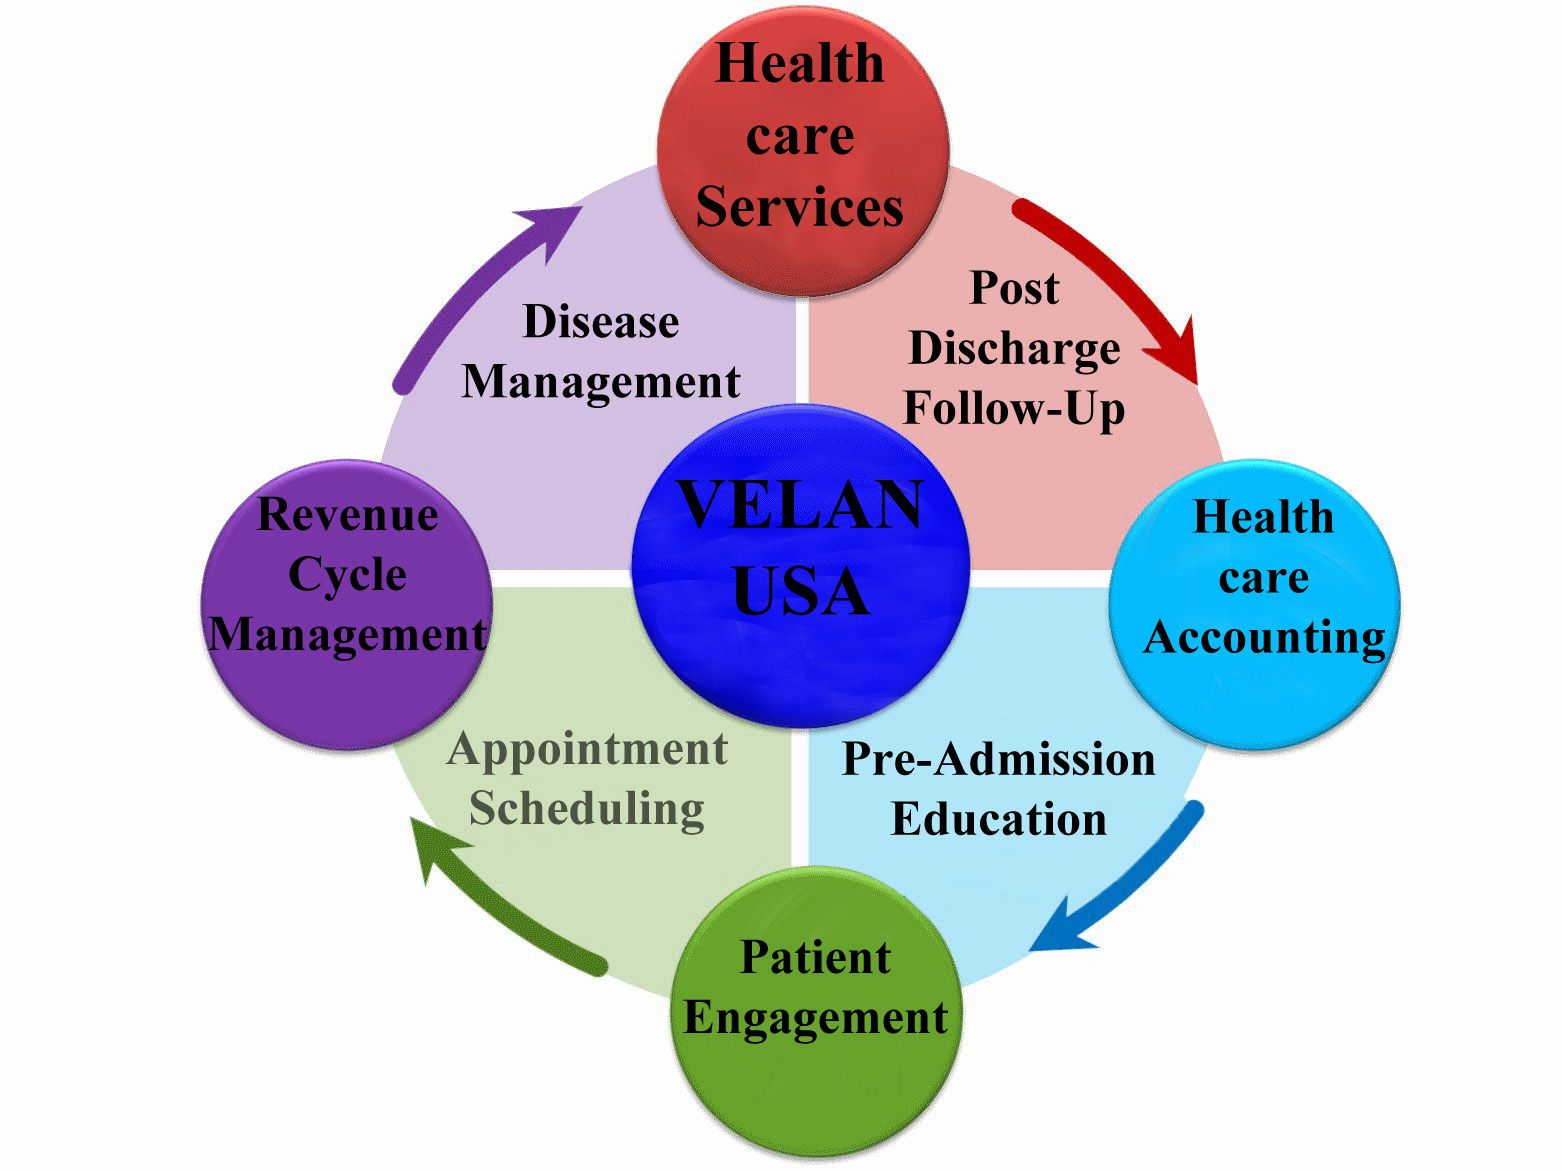 velanusa offers healthcare accounting revenue cycle management and patient engagement services we process your financial transactions and facilitate you  [ 1562 x 1171 Pixel ]